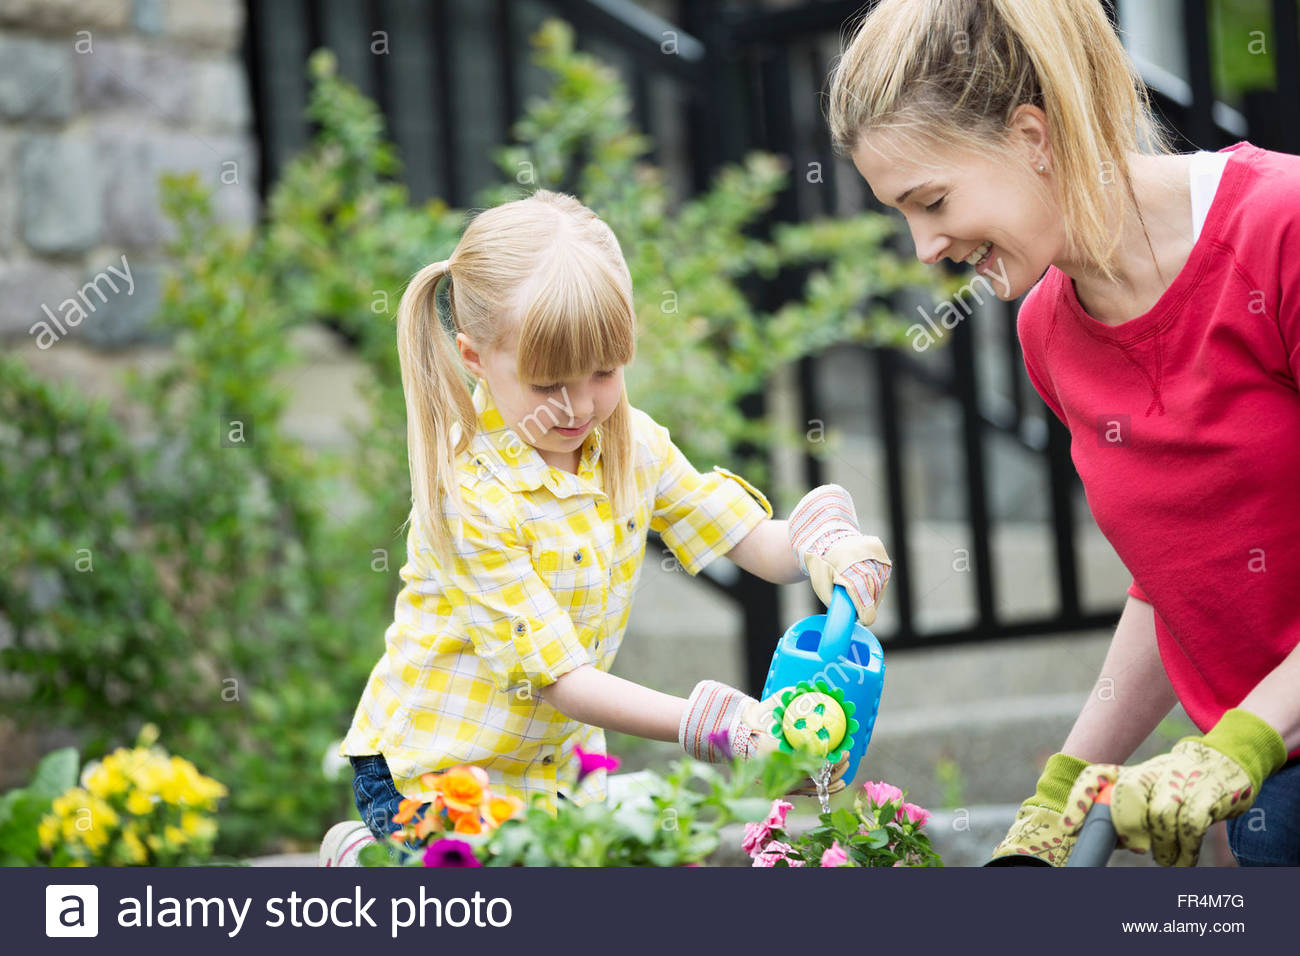 mom and 5 year old daughter maintaining flower bed - Stock Image